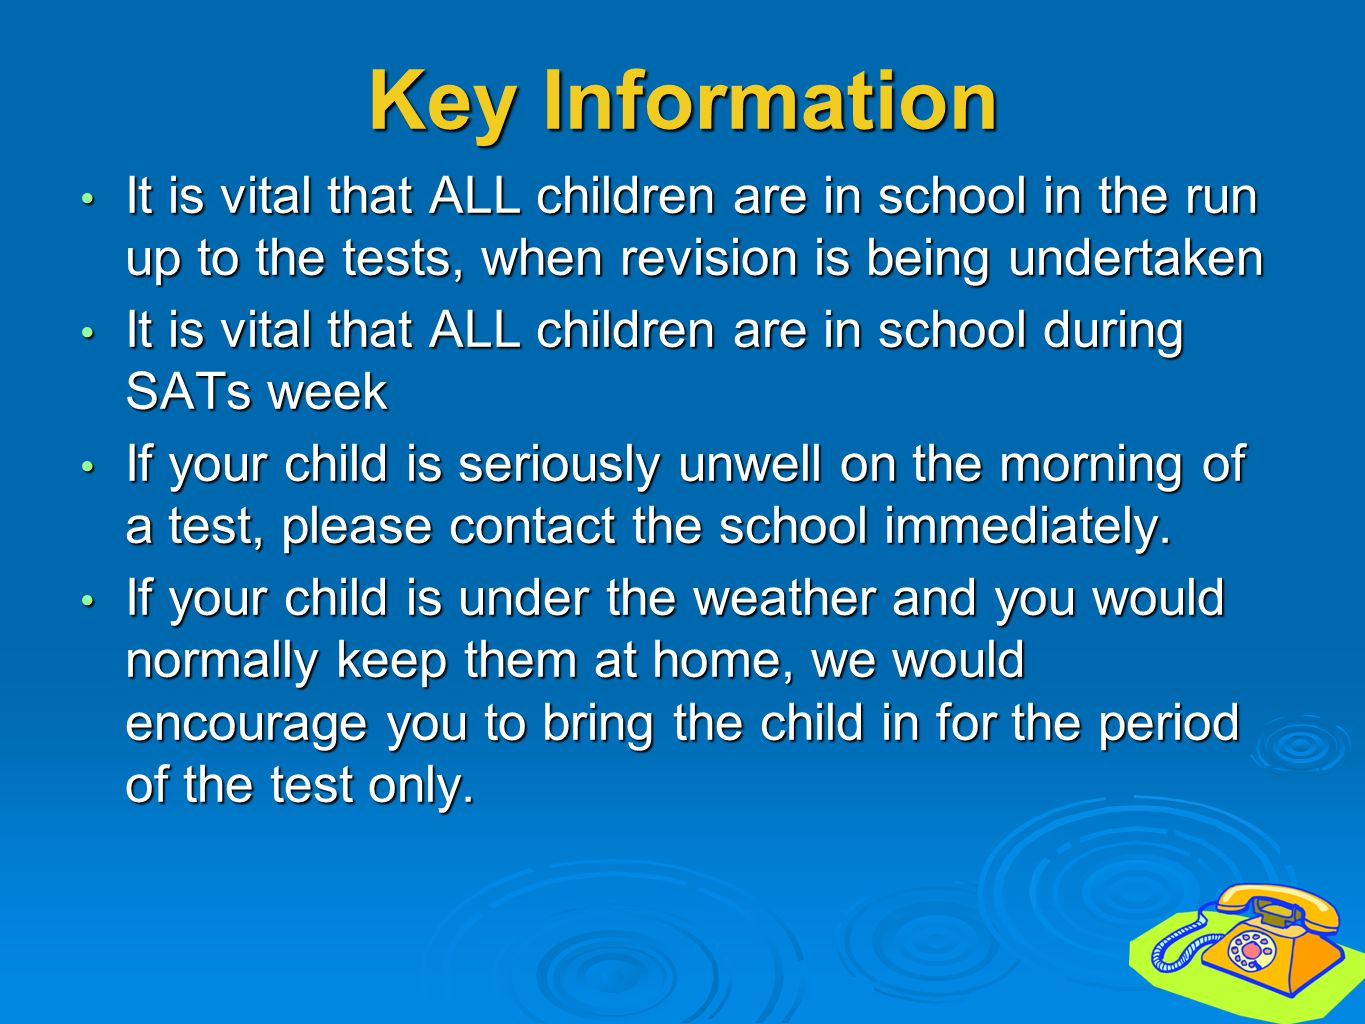 Key Information It is vital that ALL children are in school in the run up to the tests, when revision is being undertaken.